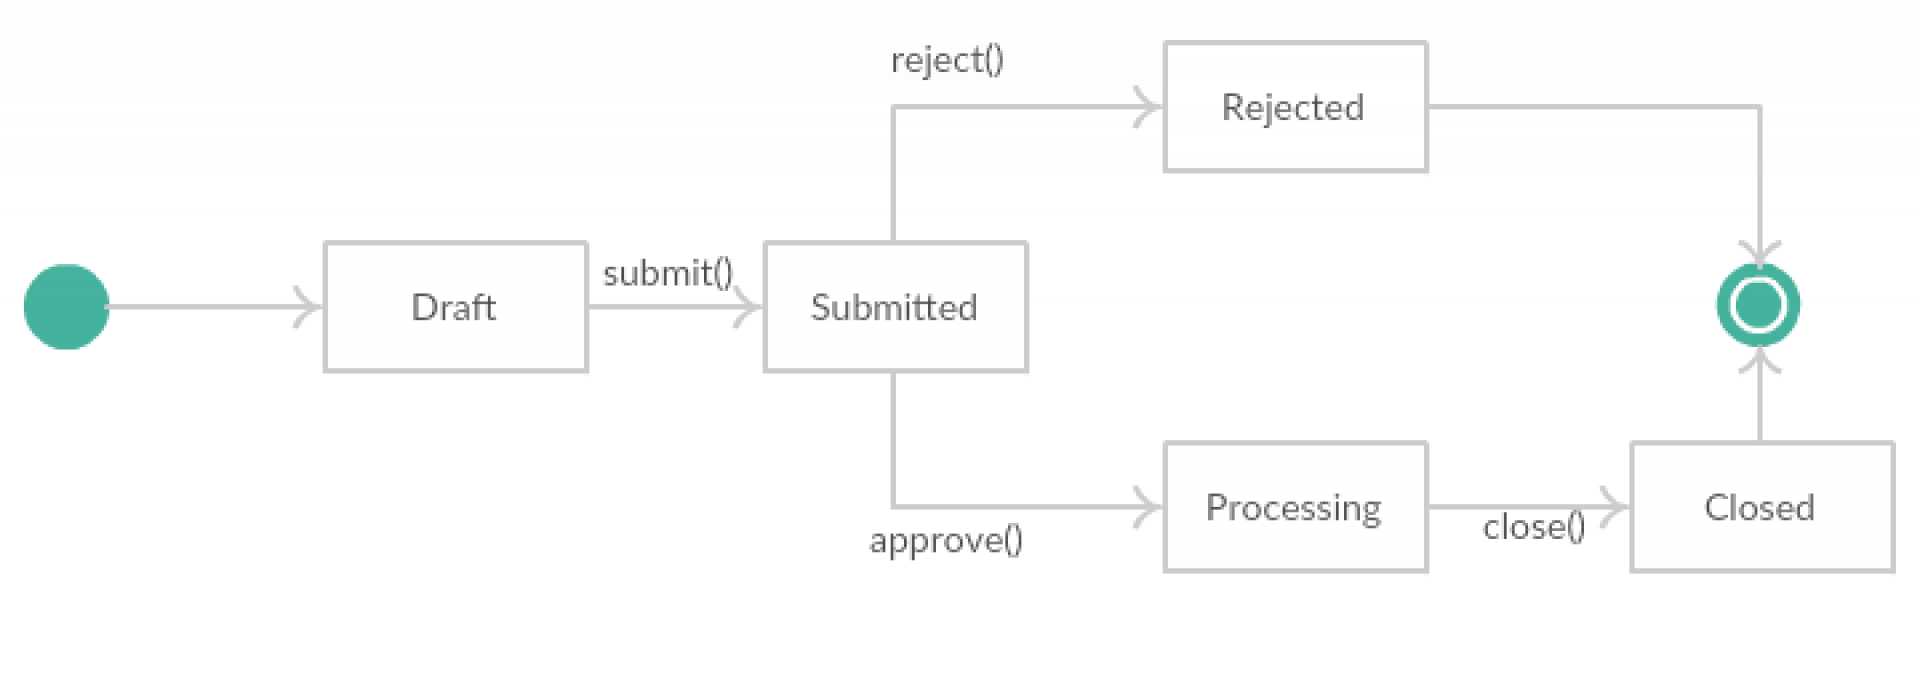 TDD implementation of Finite State Machine (FSM) with Laravel